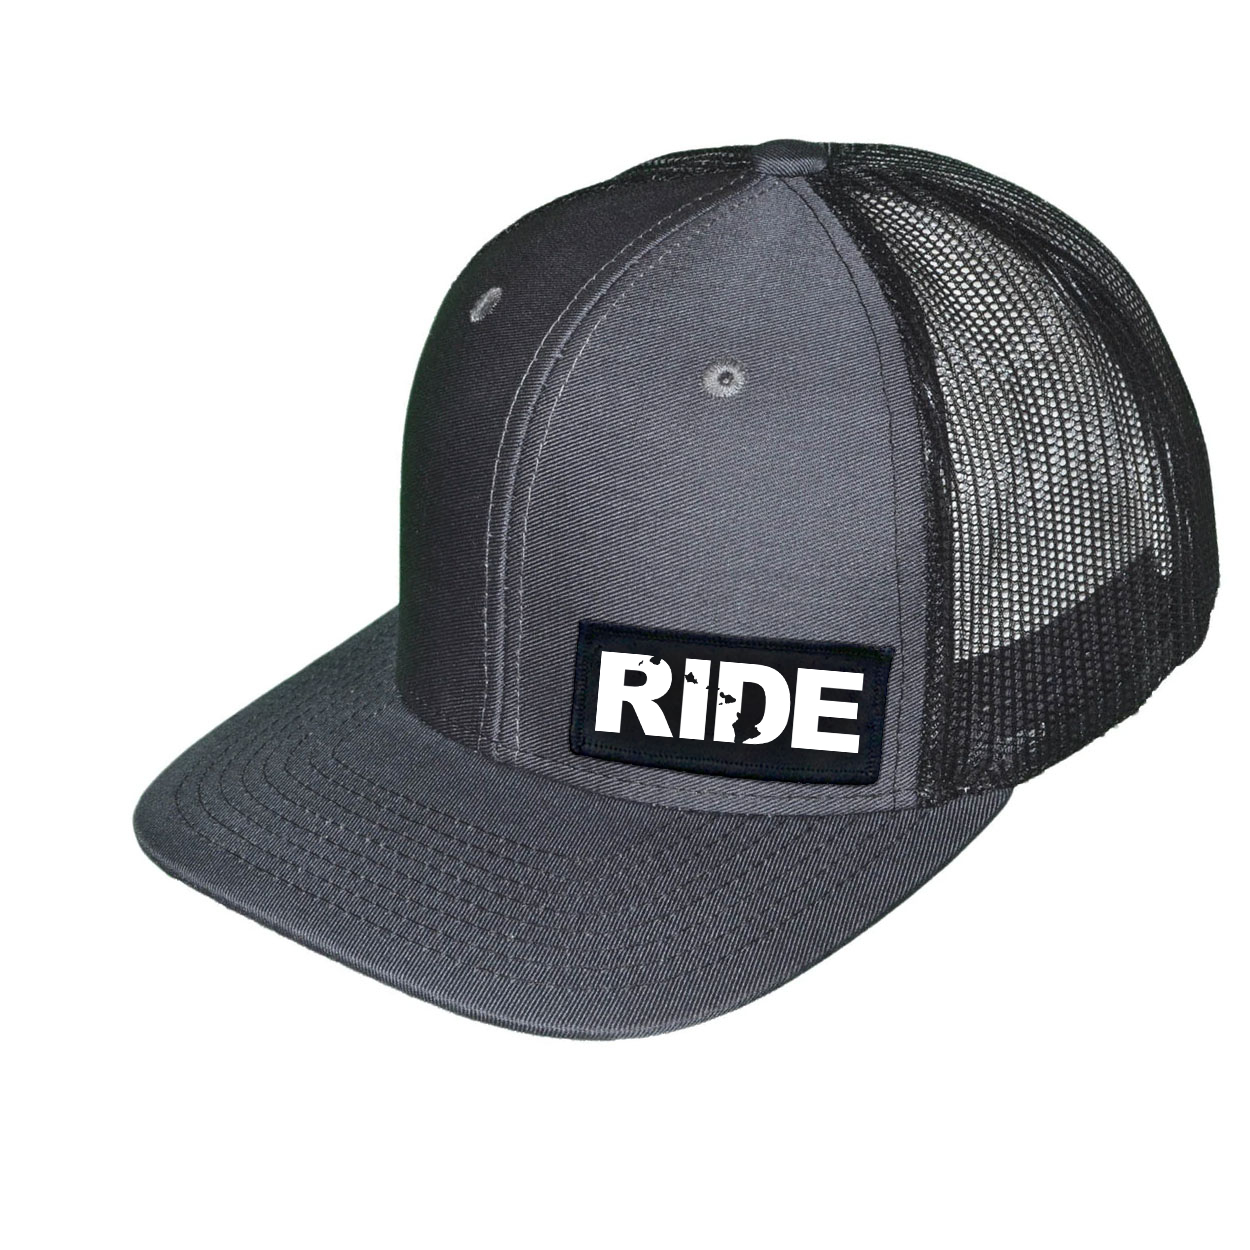 Ride Hawaii Night Out Woven Patch Snapback Trucker Hat Dark Gray/Black (White Logo)